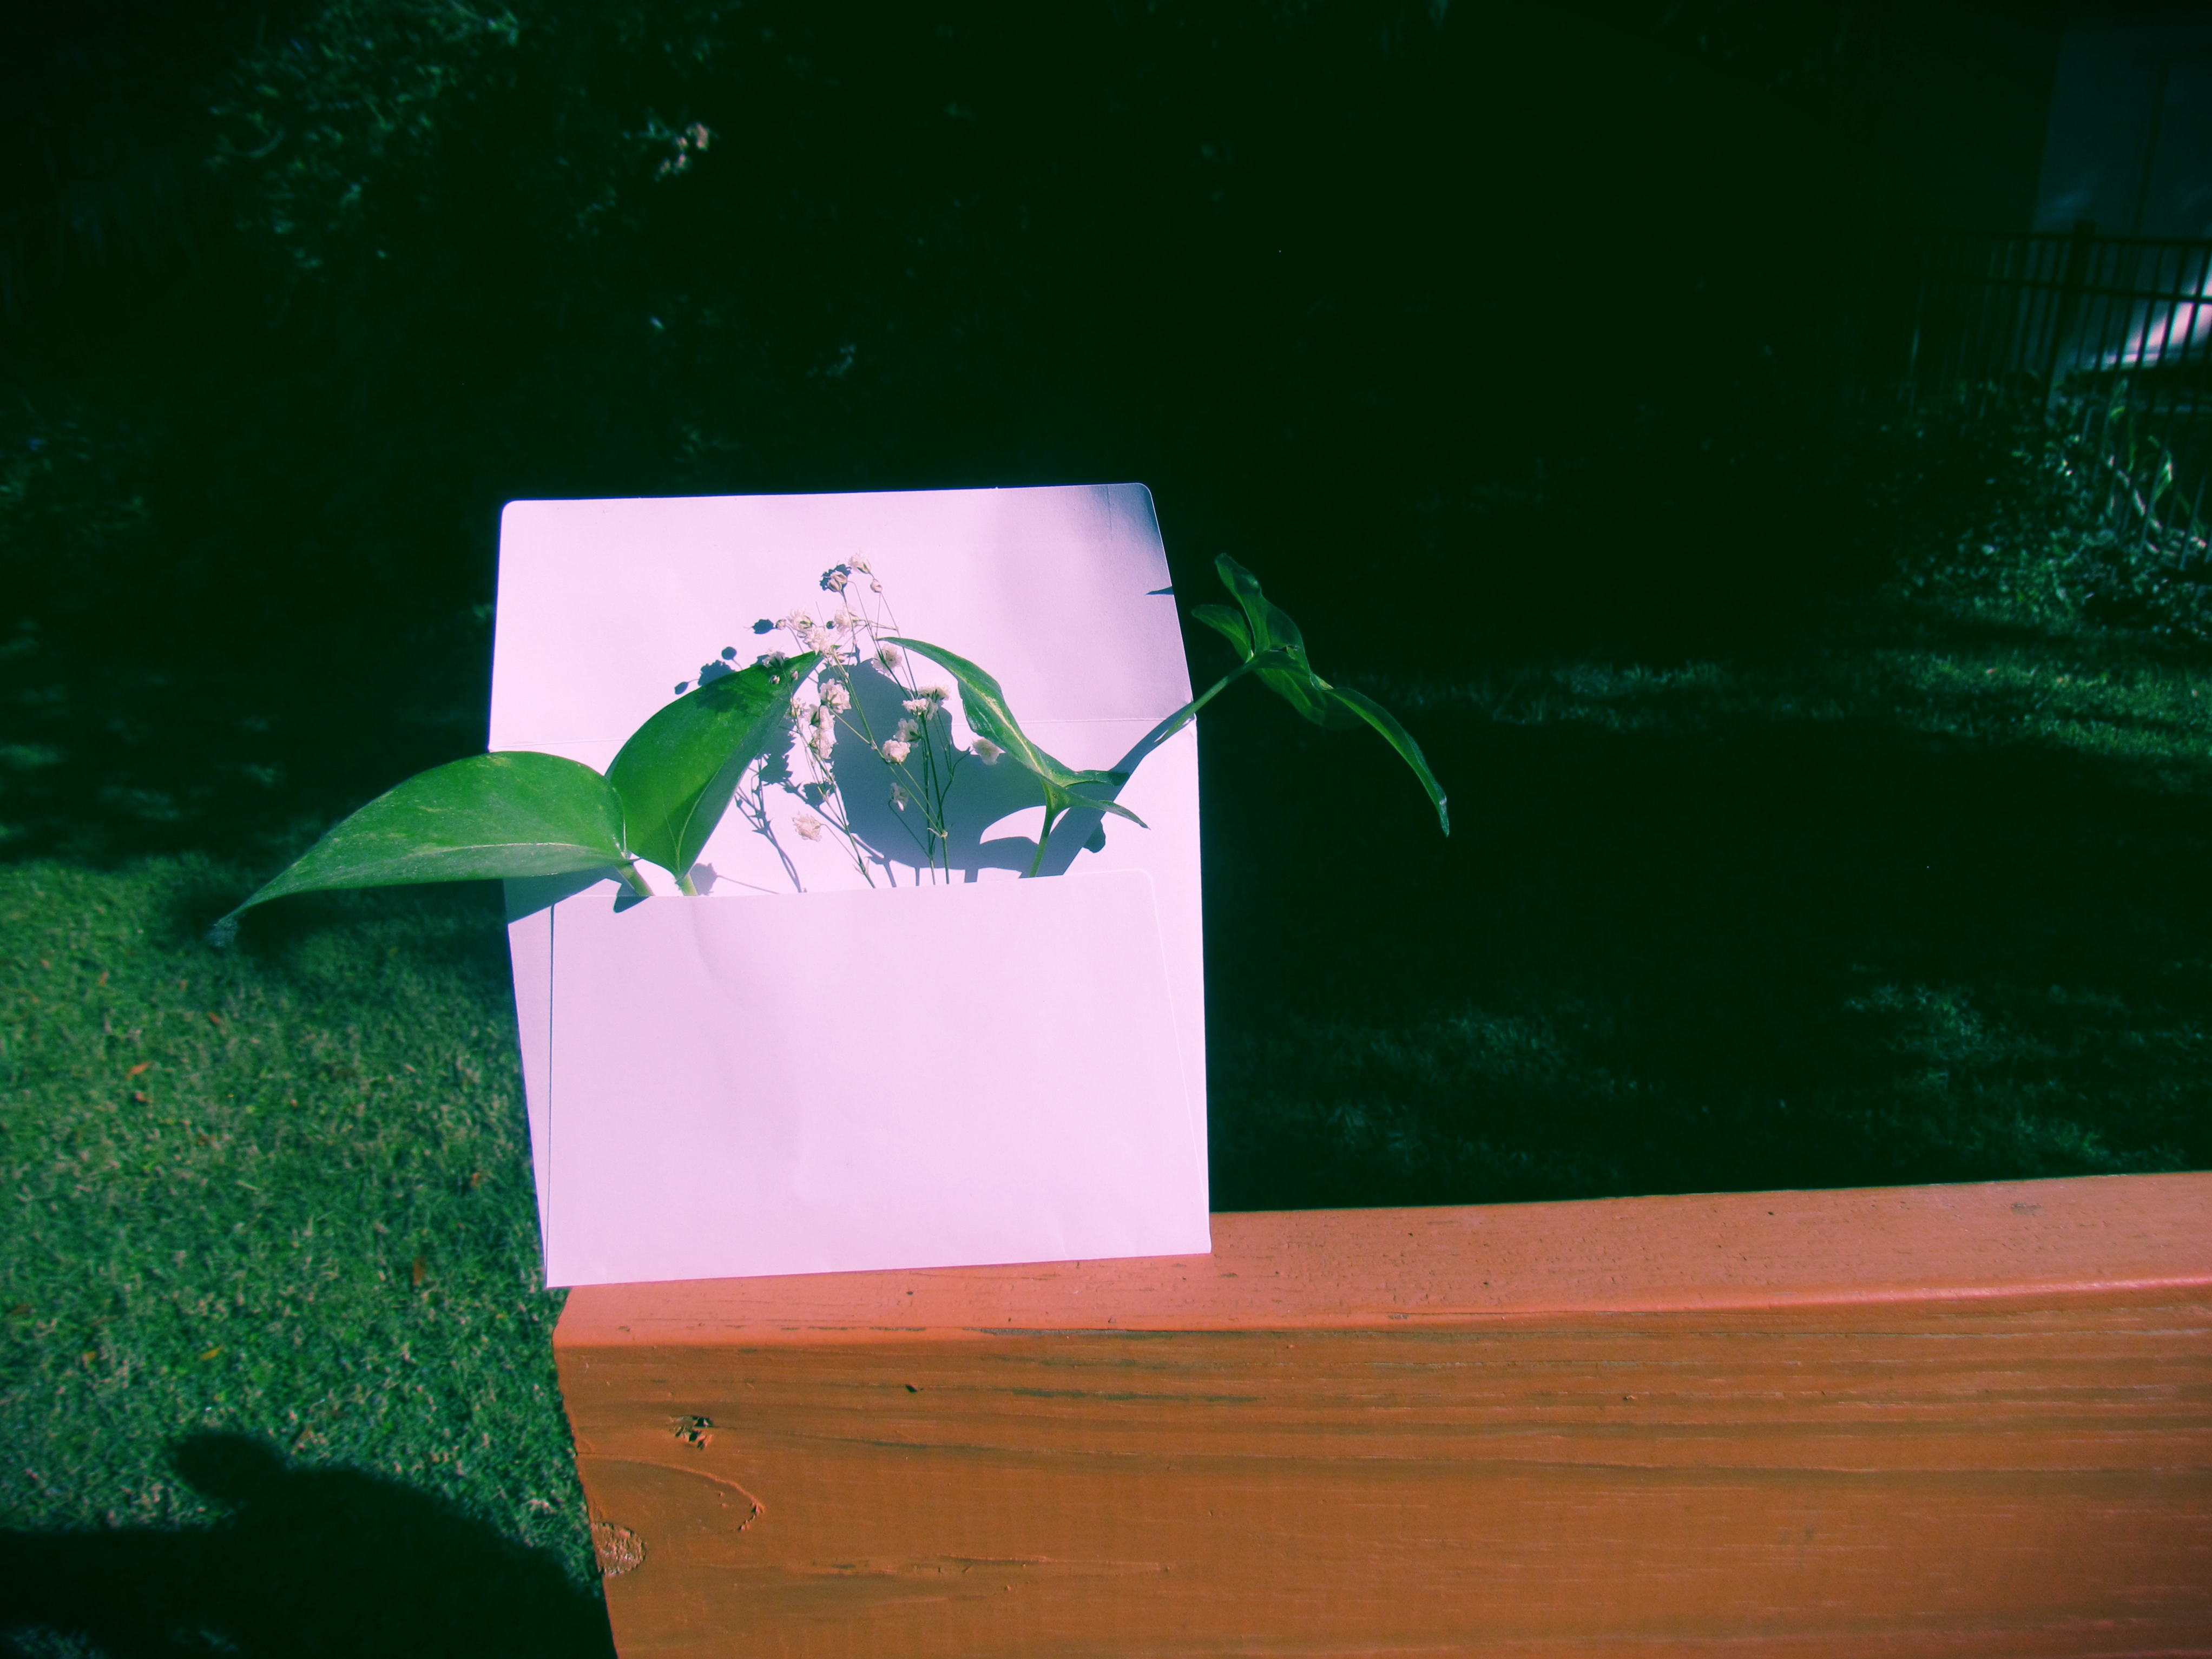 A golden pothos plant cutting in an envelope in the backyard of a Florida backyard in a tiny, seaside fishing village